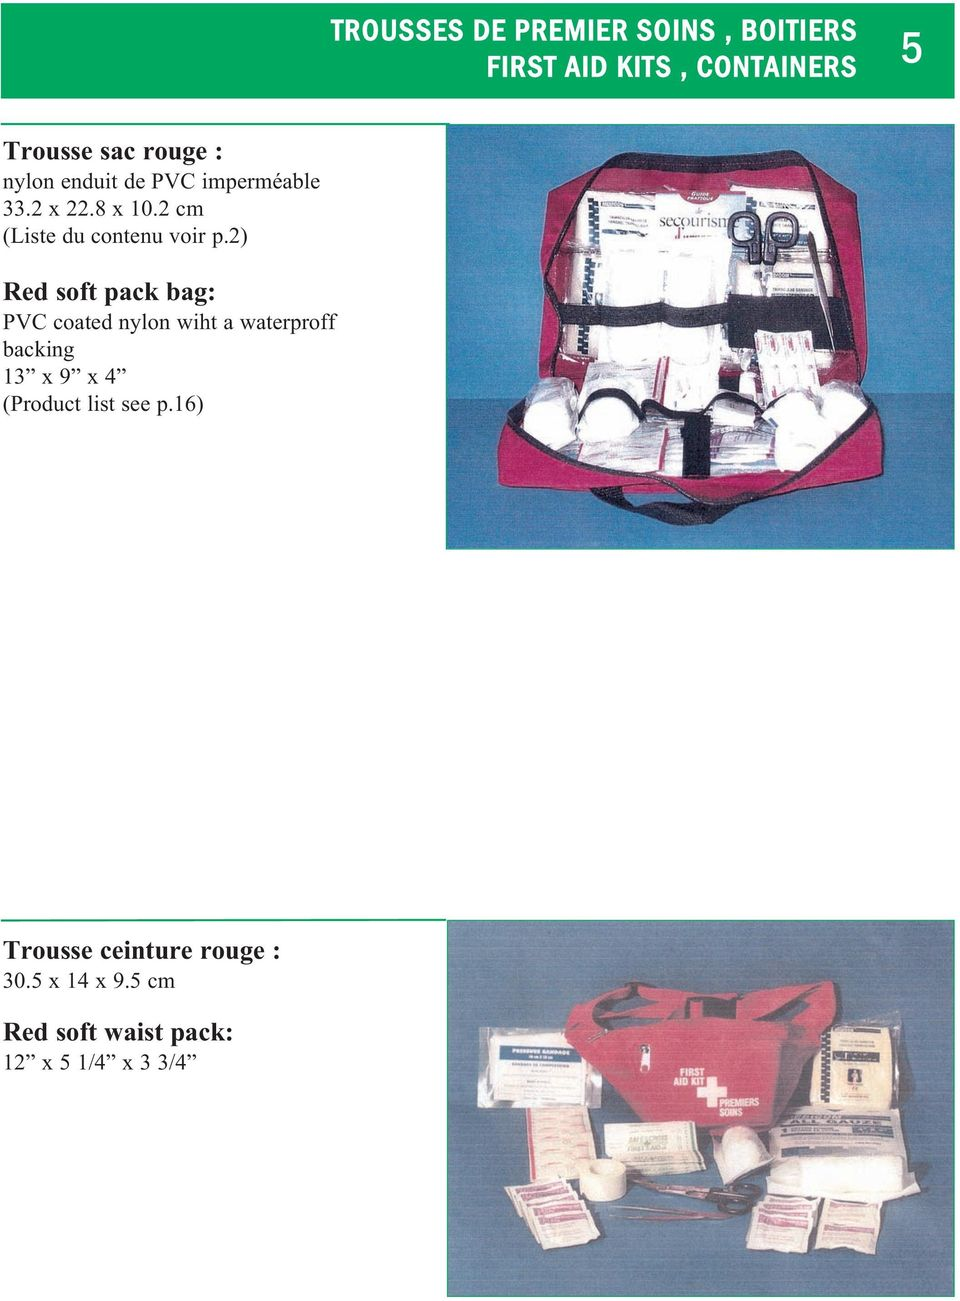 2) Red soft pack bag: PVC coated nylon wiht a waterproff backing 13 x 9 x 4 (Product